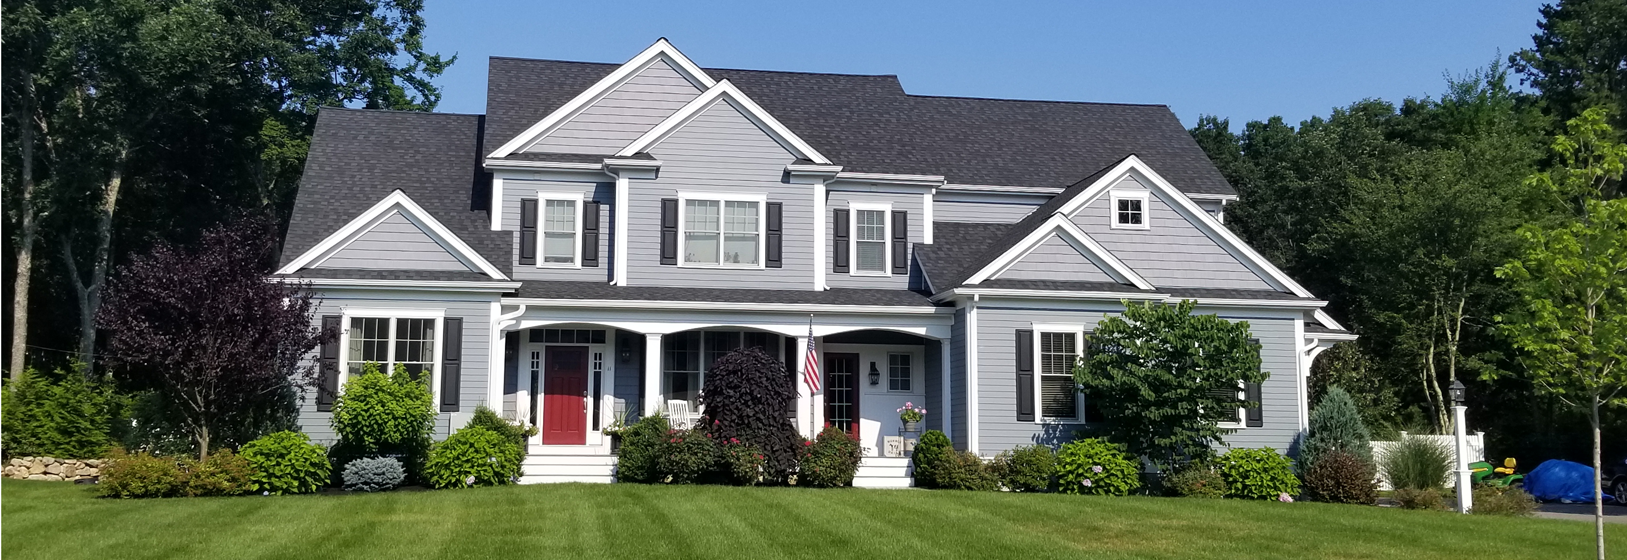 Colwell Homes colonial